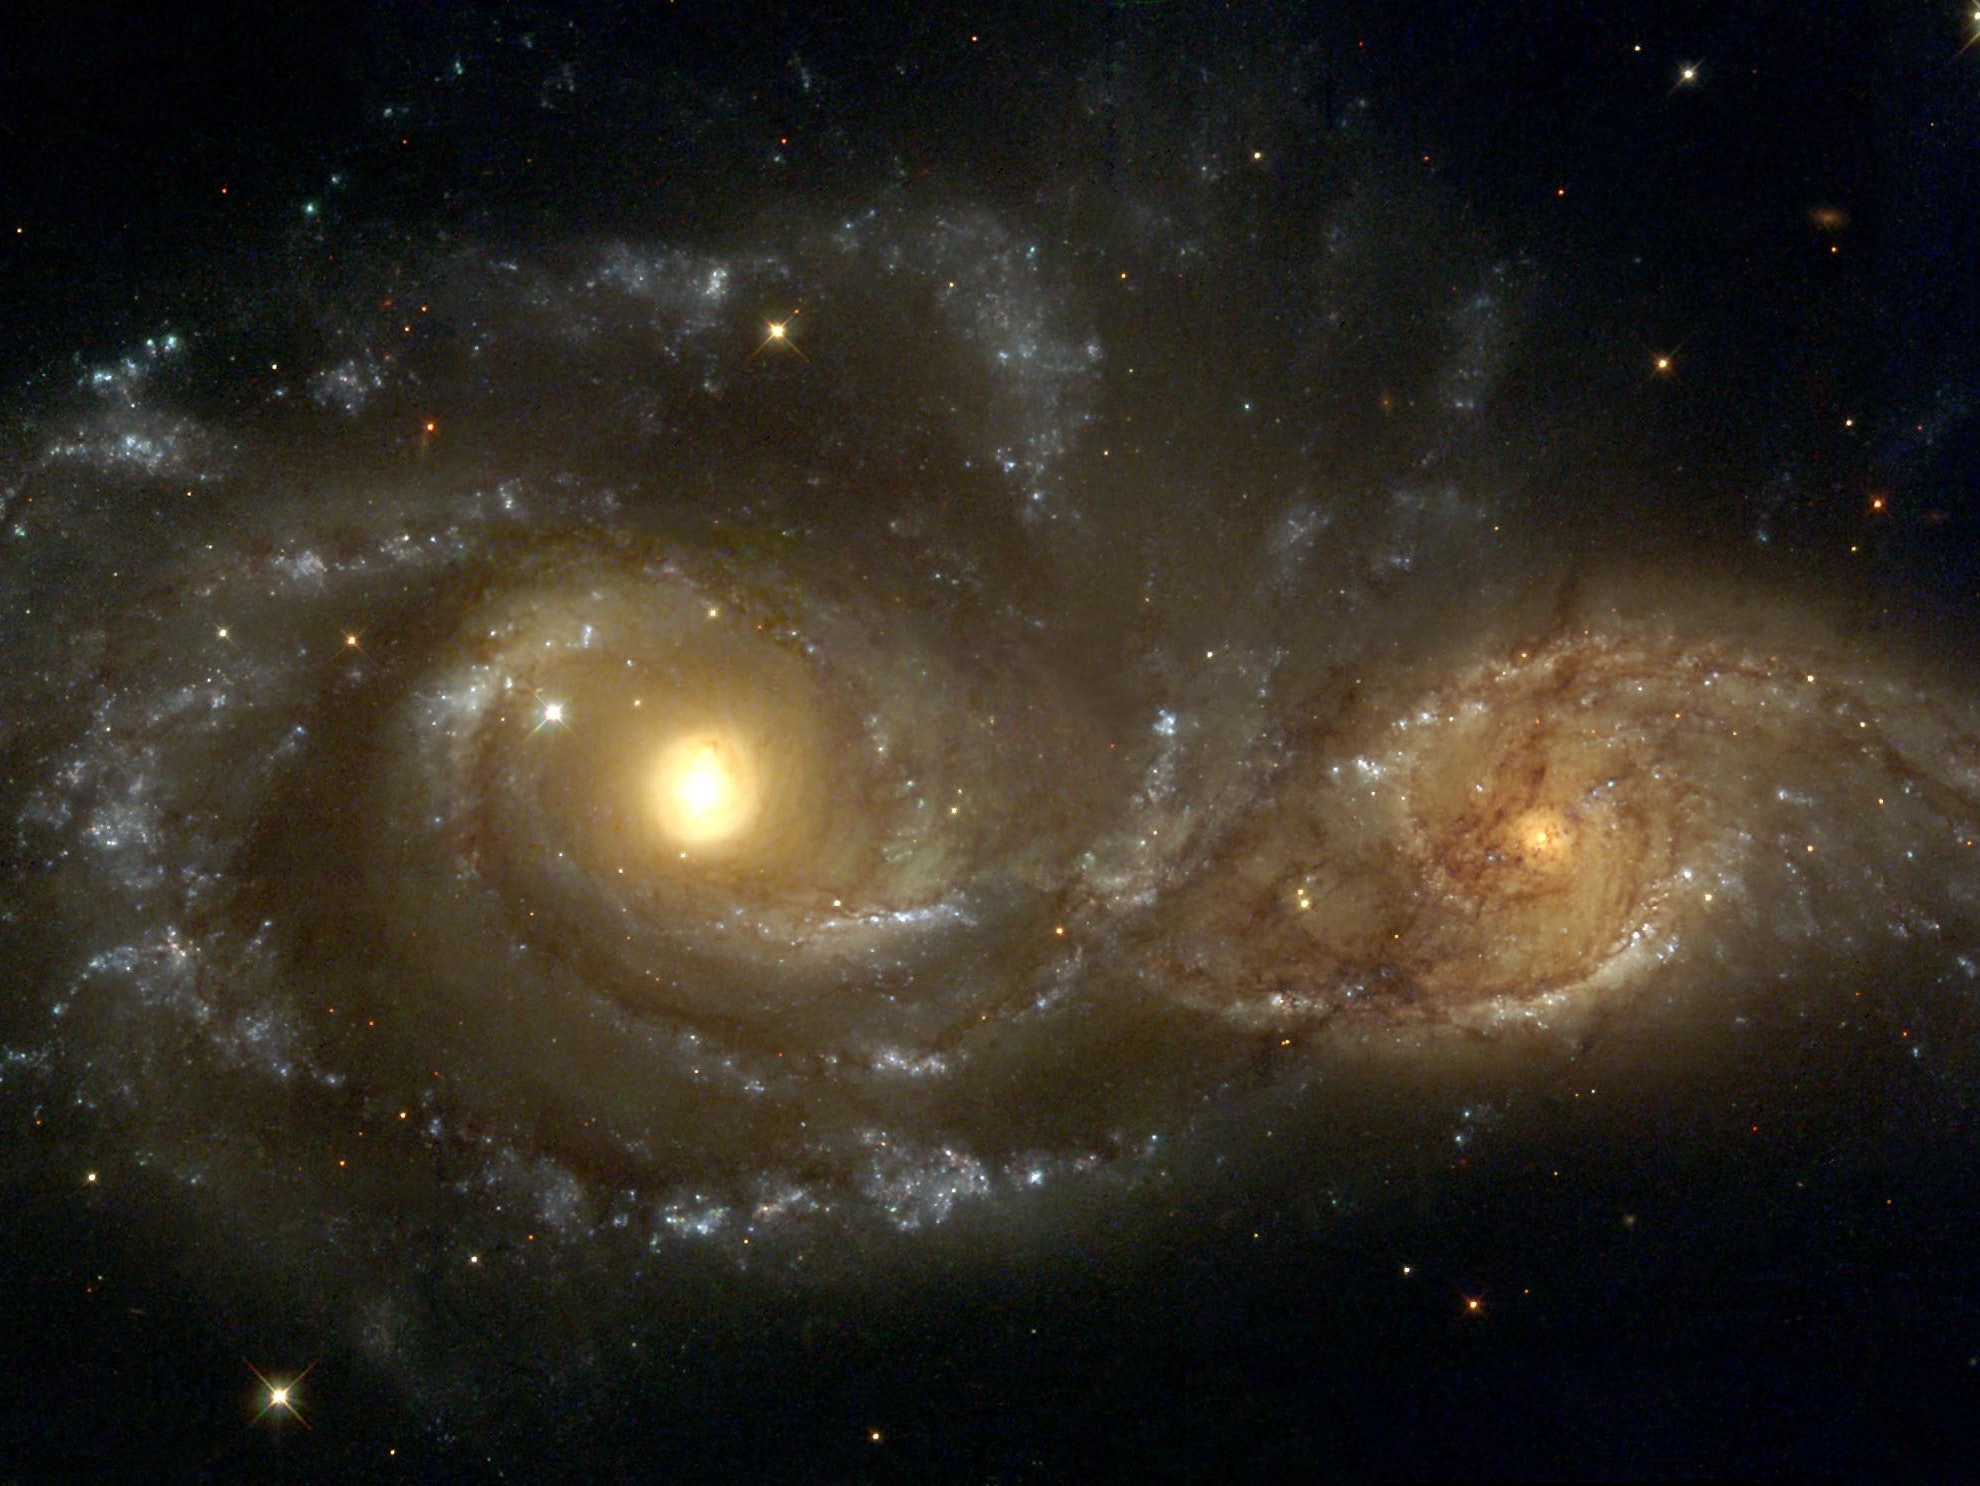 Get a room galaxies.